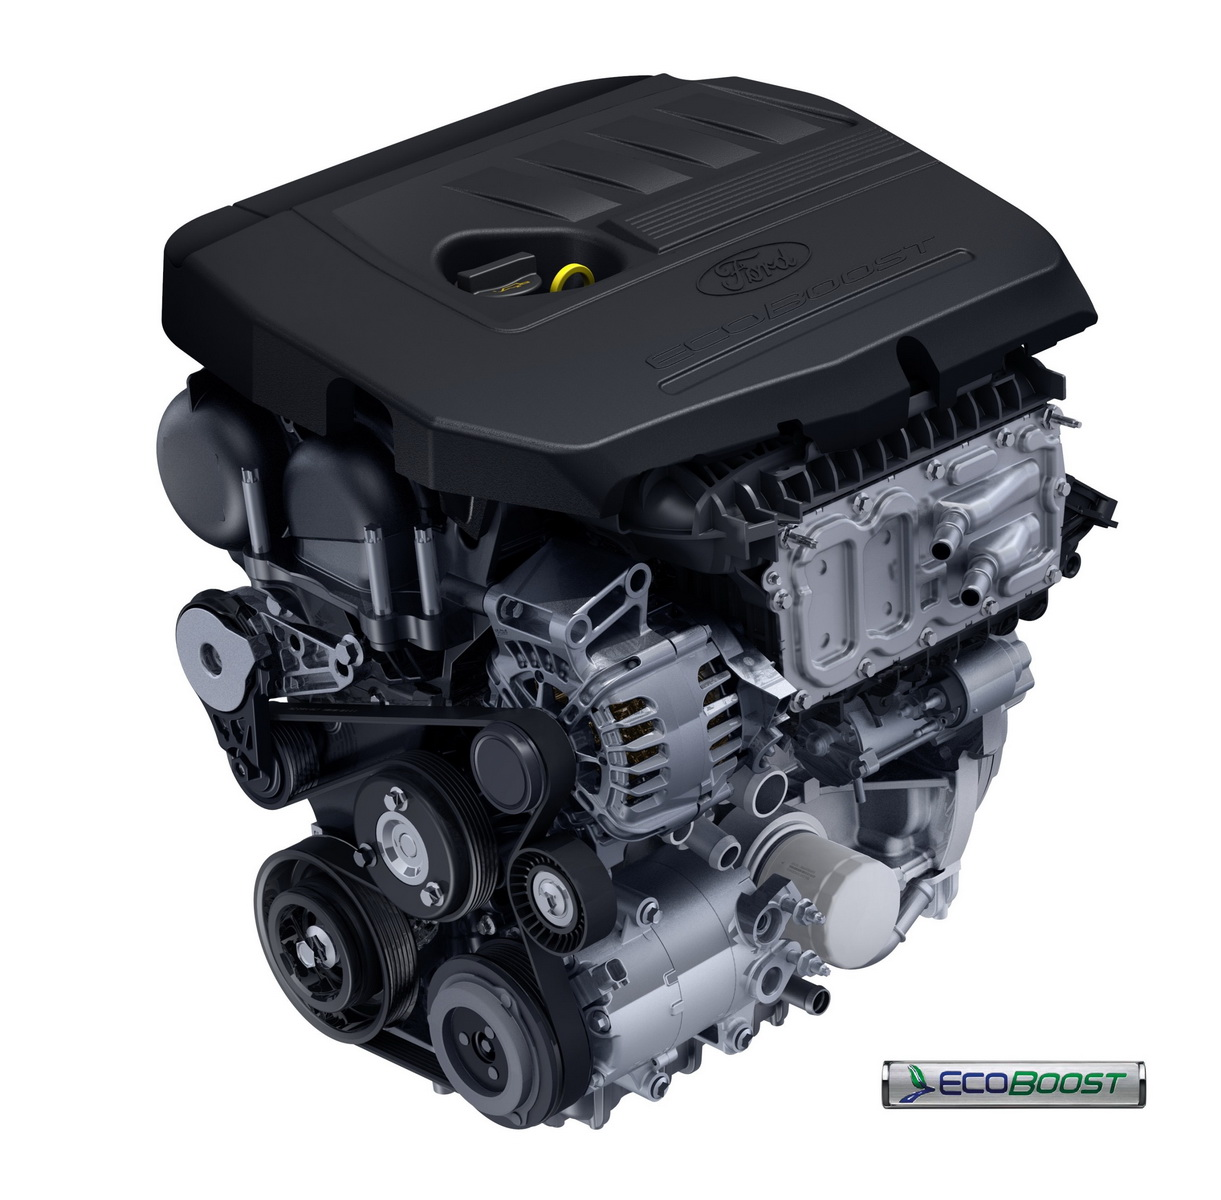 EcoBoost Turbo 1 5L Engine with Logo